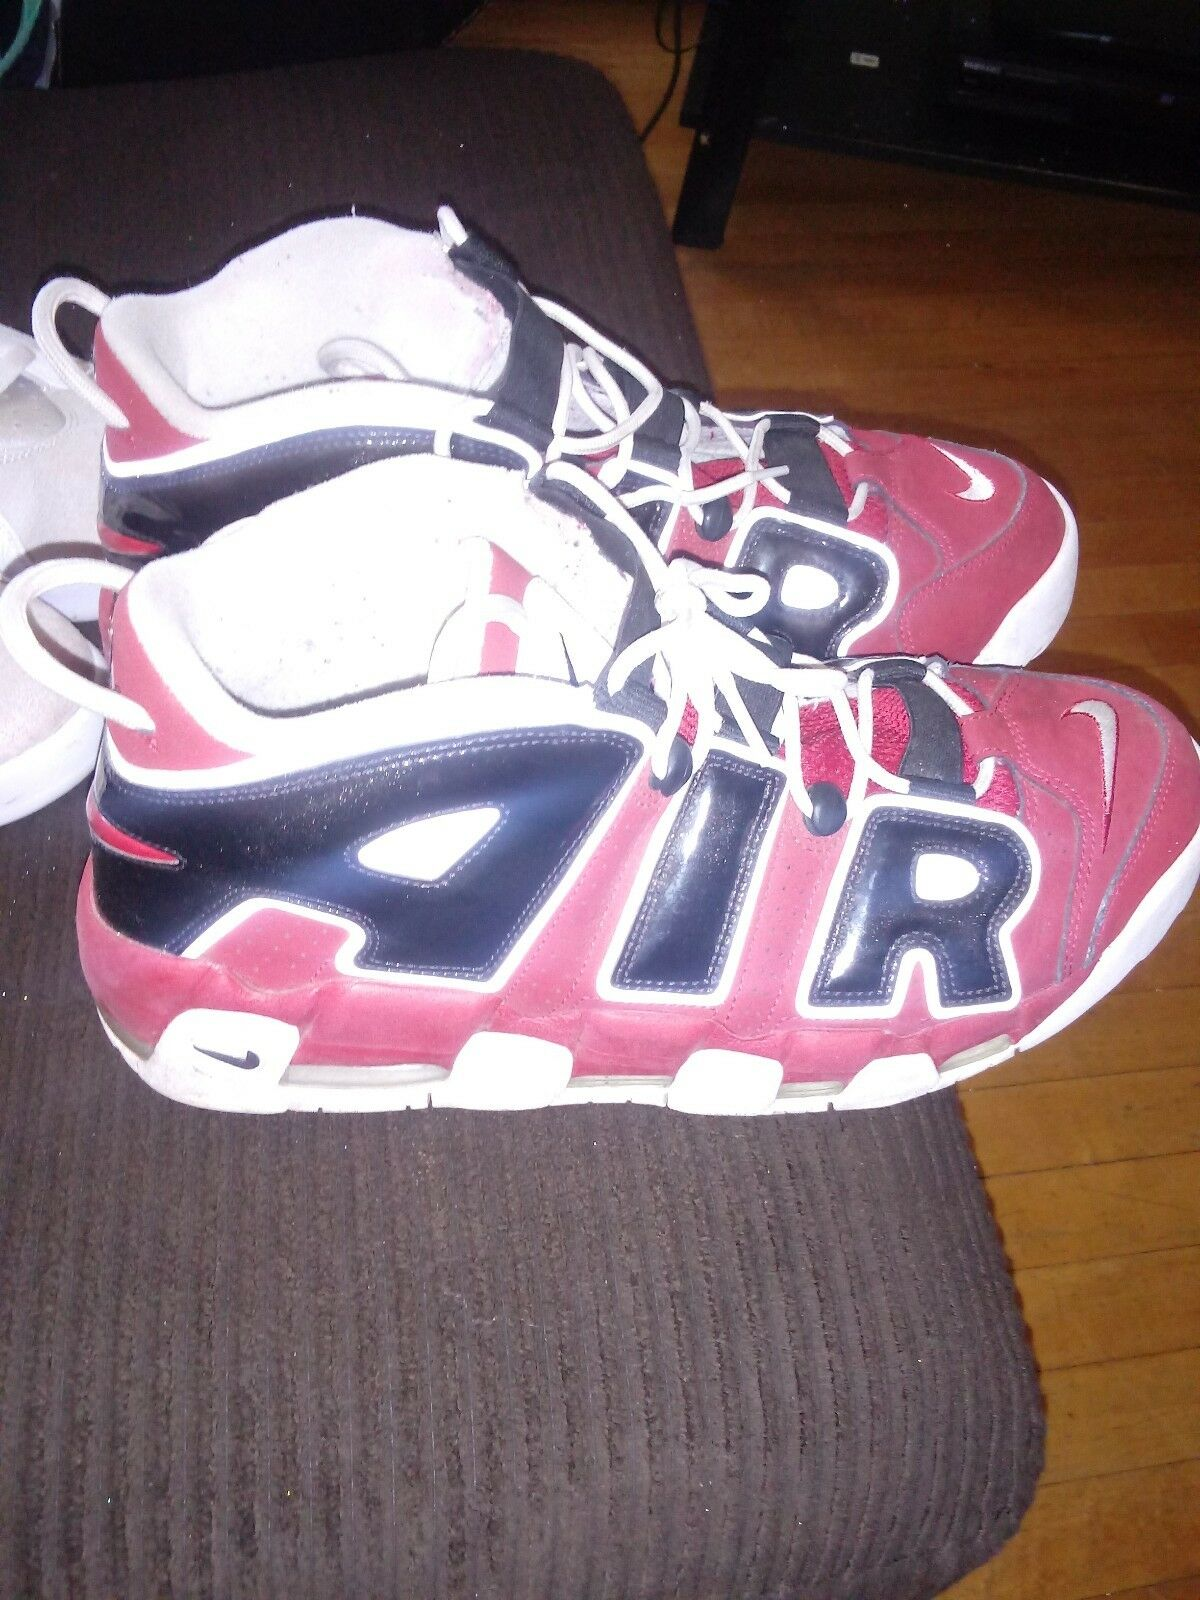 Nike air uptempo size 13  Cheap and fashionable